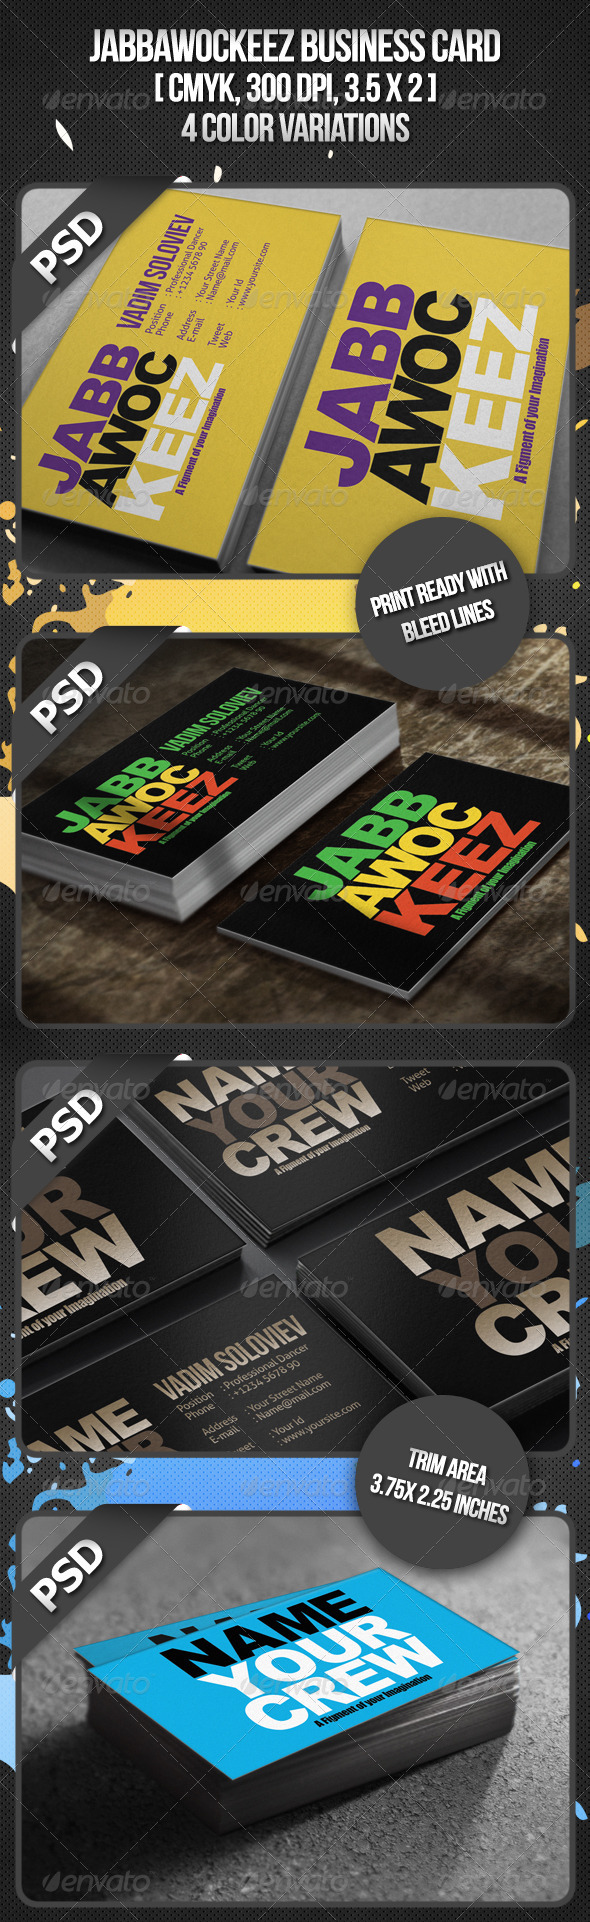 Jabbawockeez Business Card - Creative Business Cards